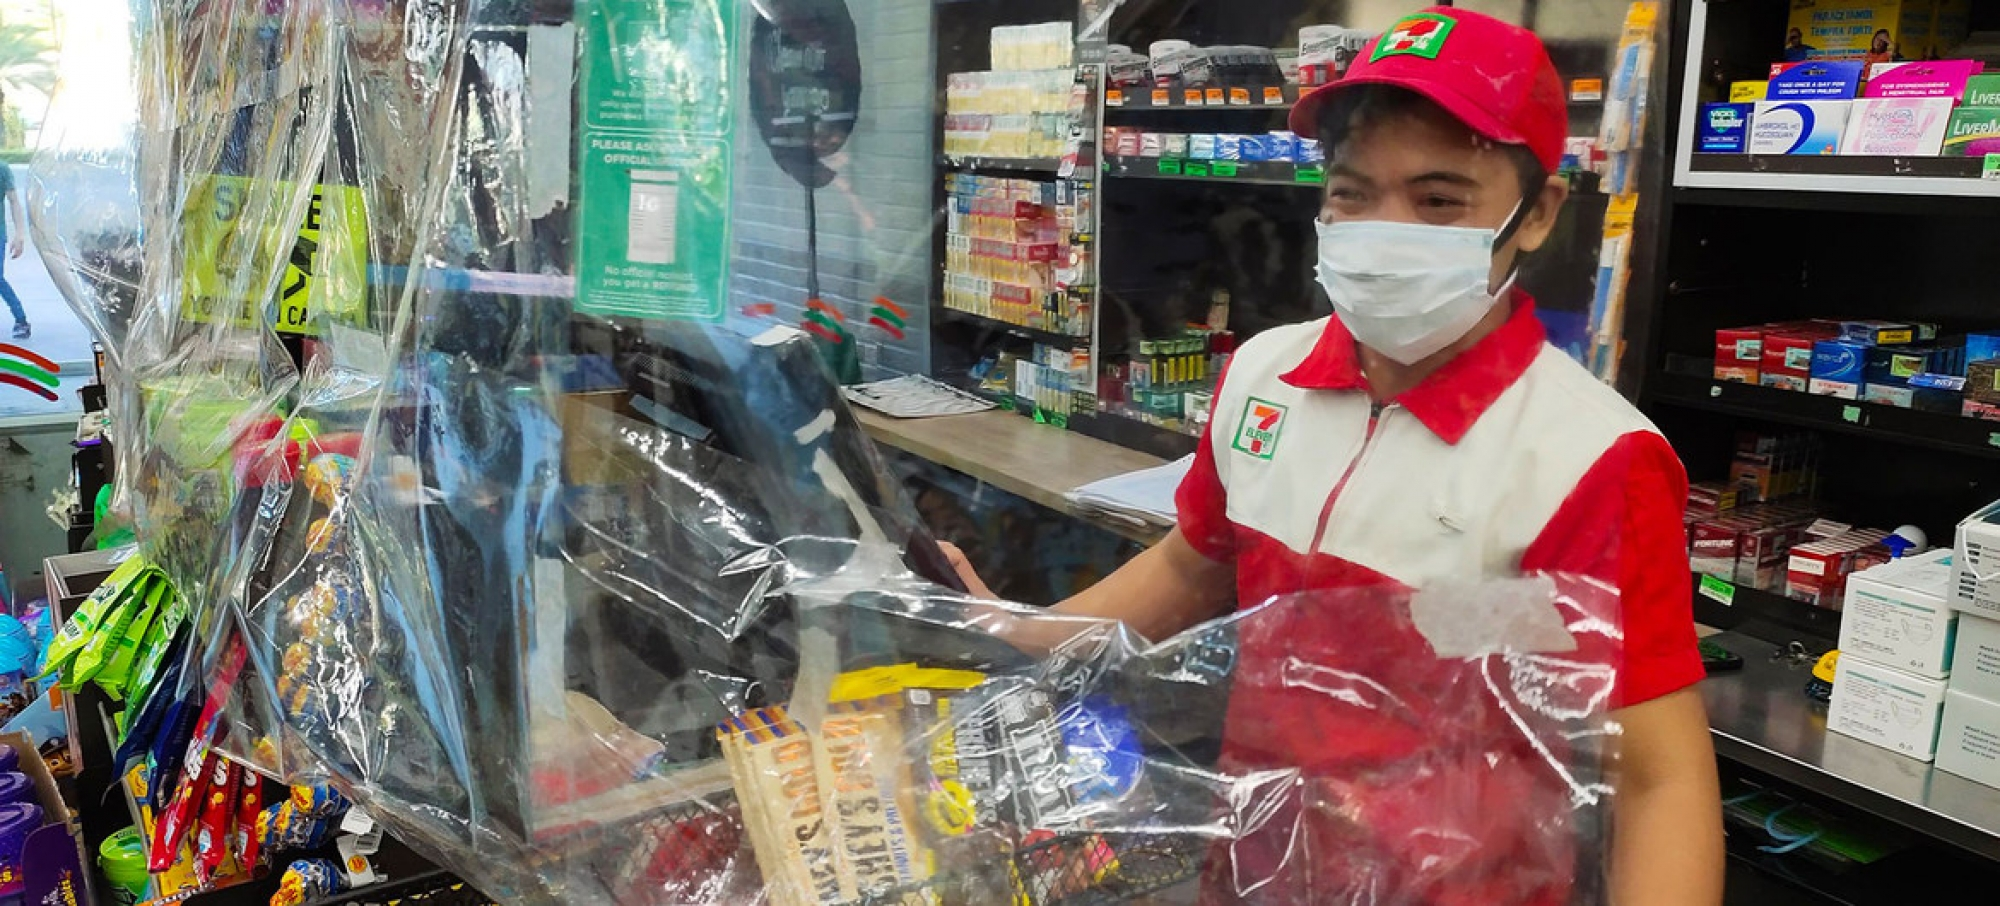 A convenience store requires staff to wear a mask, observe physical distance, and use a plastic sheet barrier as safety measures to prevent the spread of COVID-19, Muntinlupa City, Philippines.